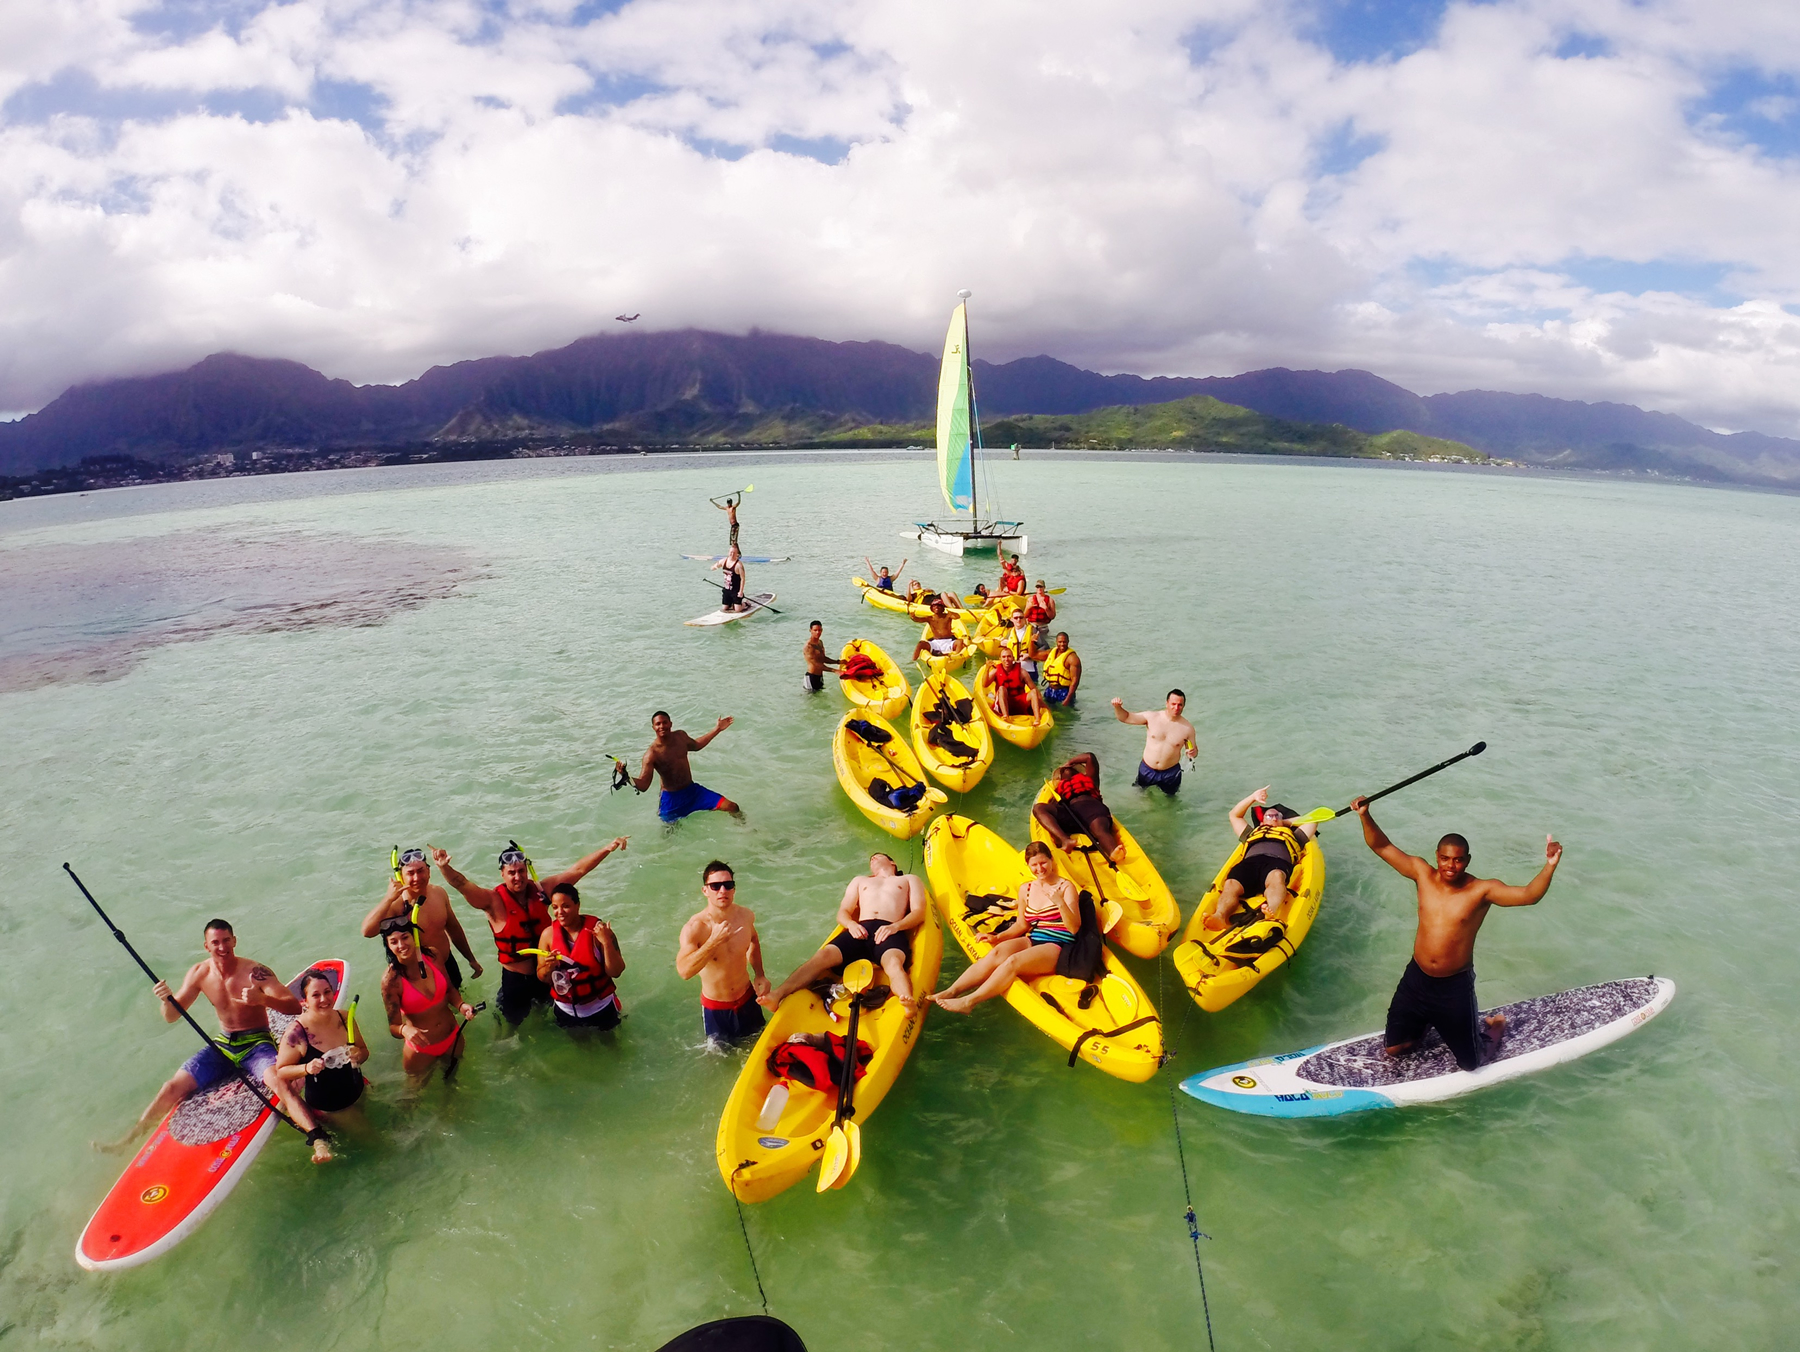 Kayak, Stand-Up-Paddle Board, and Snorkel Rentals | Holokai Adventure